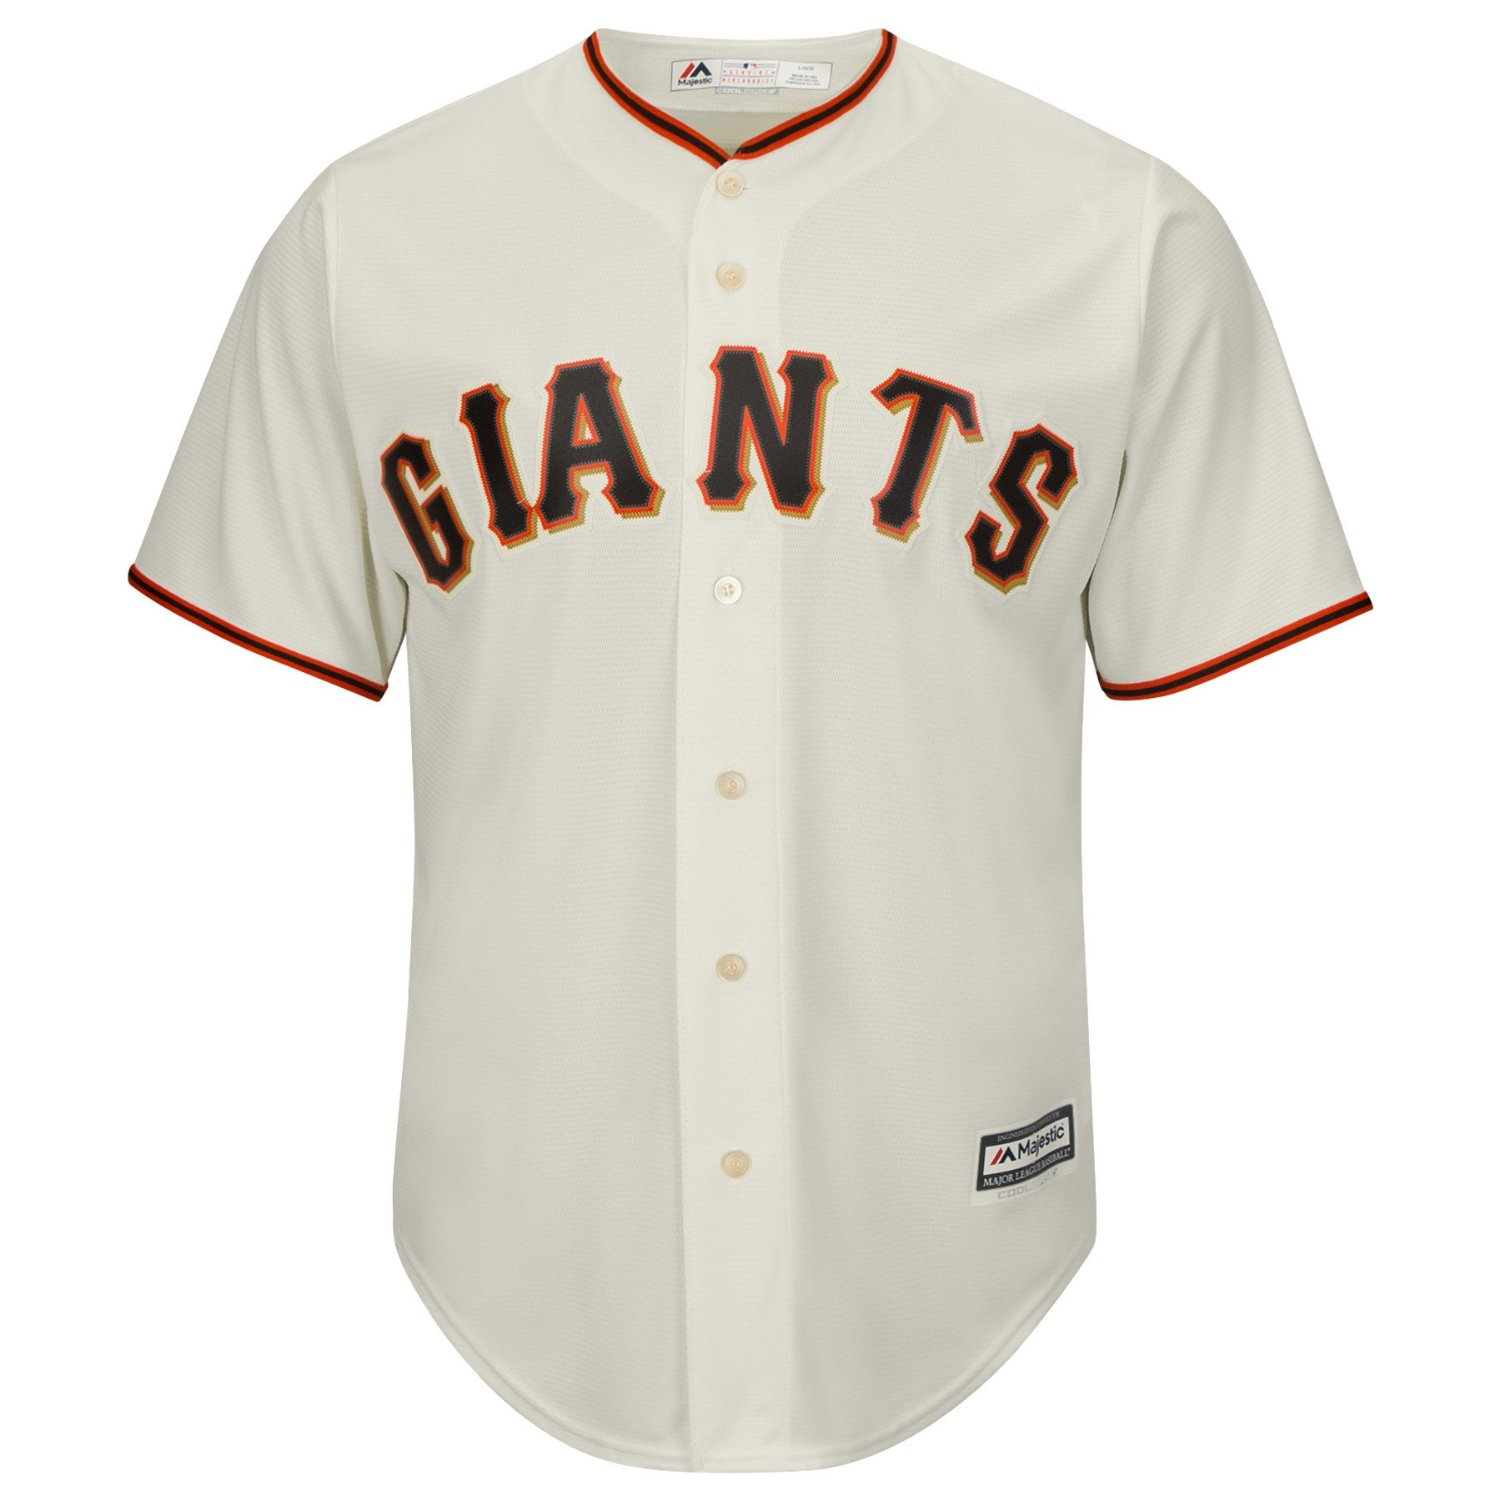 ... new tim lincecum san francisco giants 55 mlb home jersey youth medium  10 12 discounted retail f8749c9b9